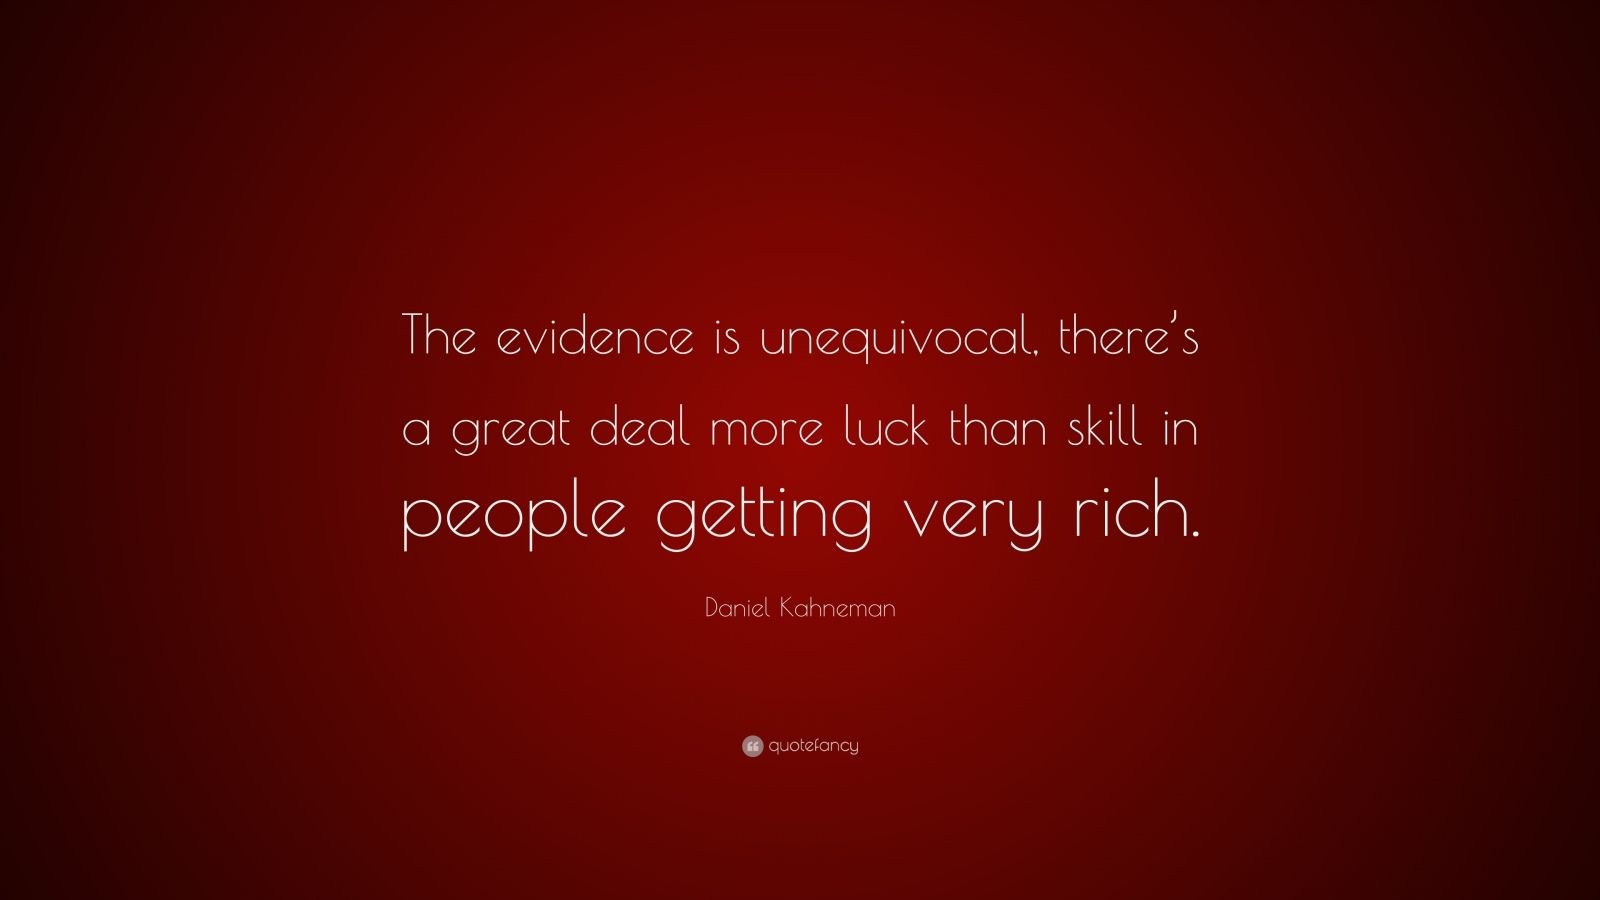 """Daniel Kahneman Quote: """"The evidence is unequivocal, there's a great deal more luck than skill in people getting very rich."""""""